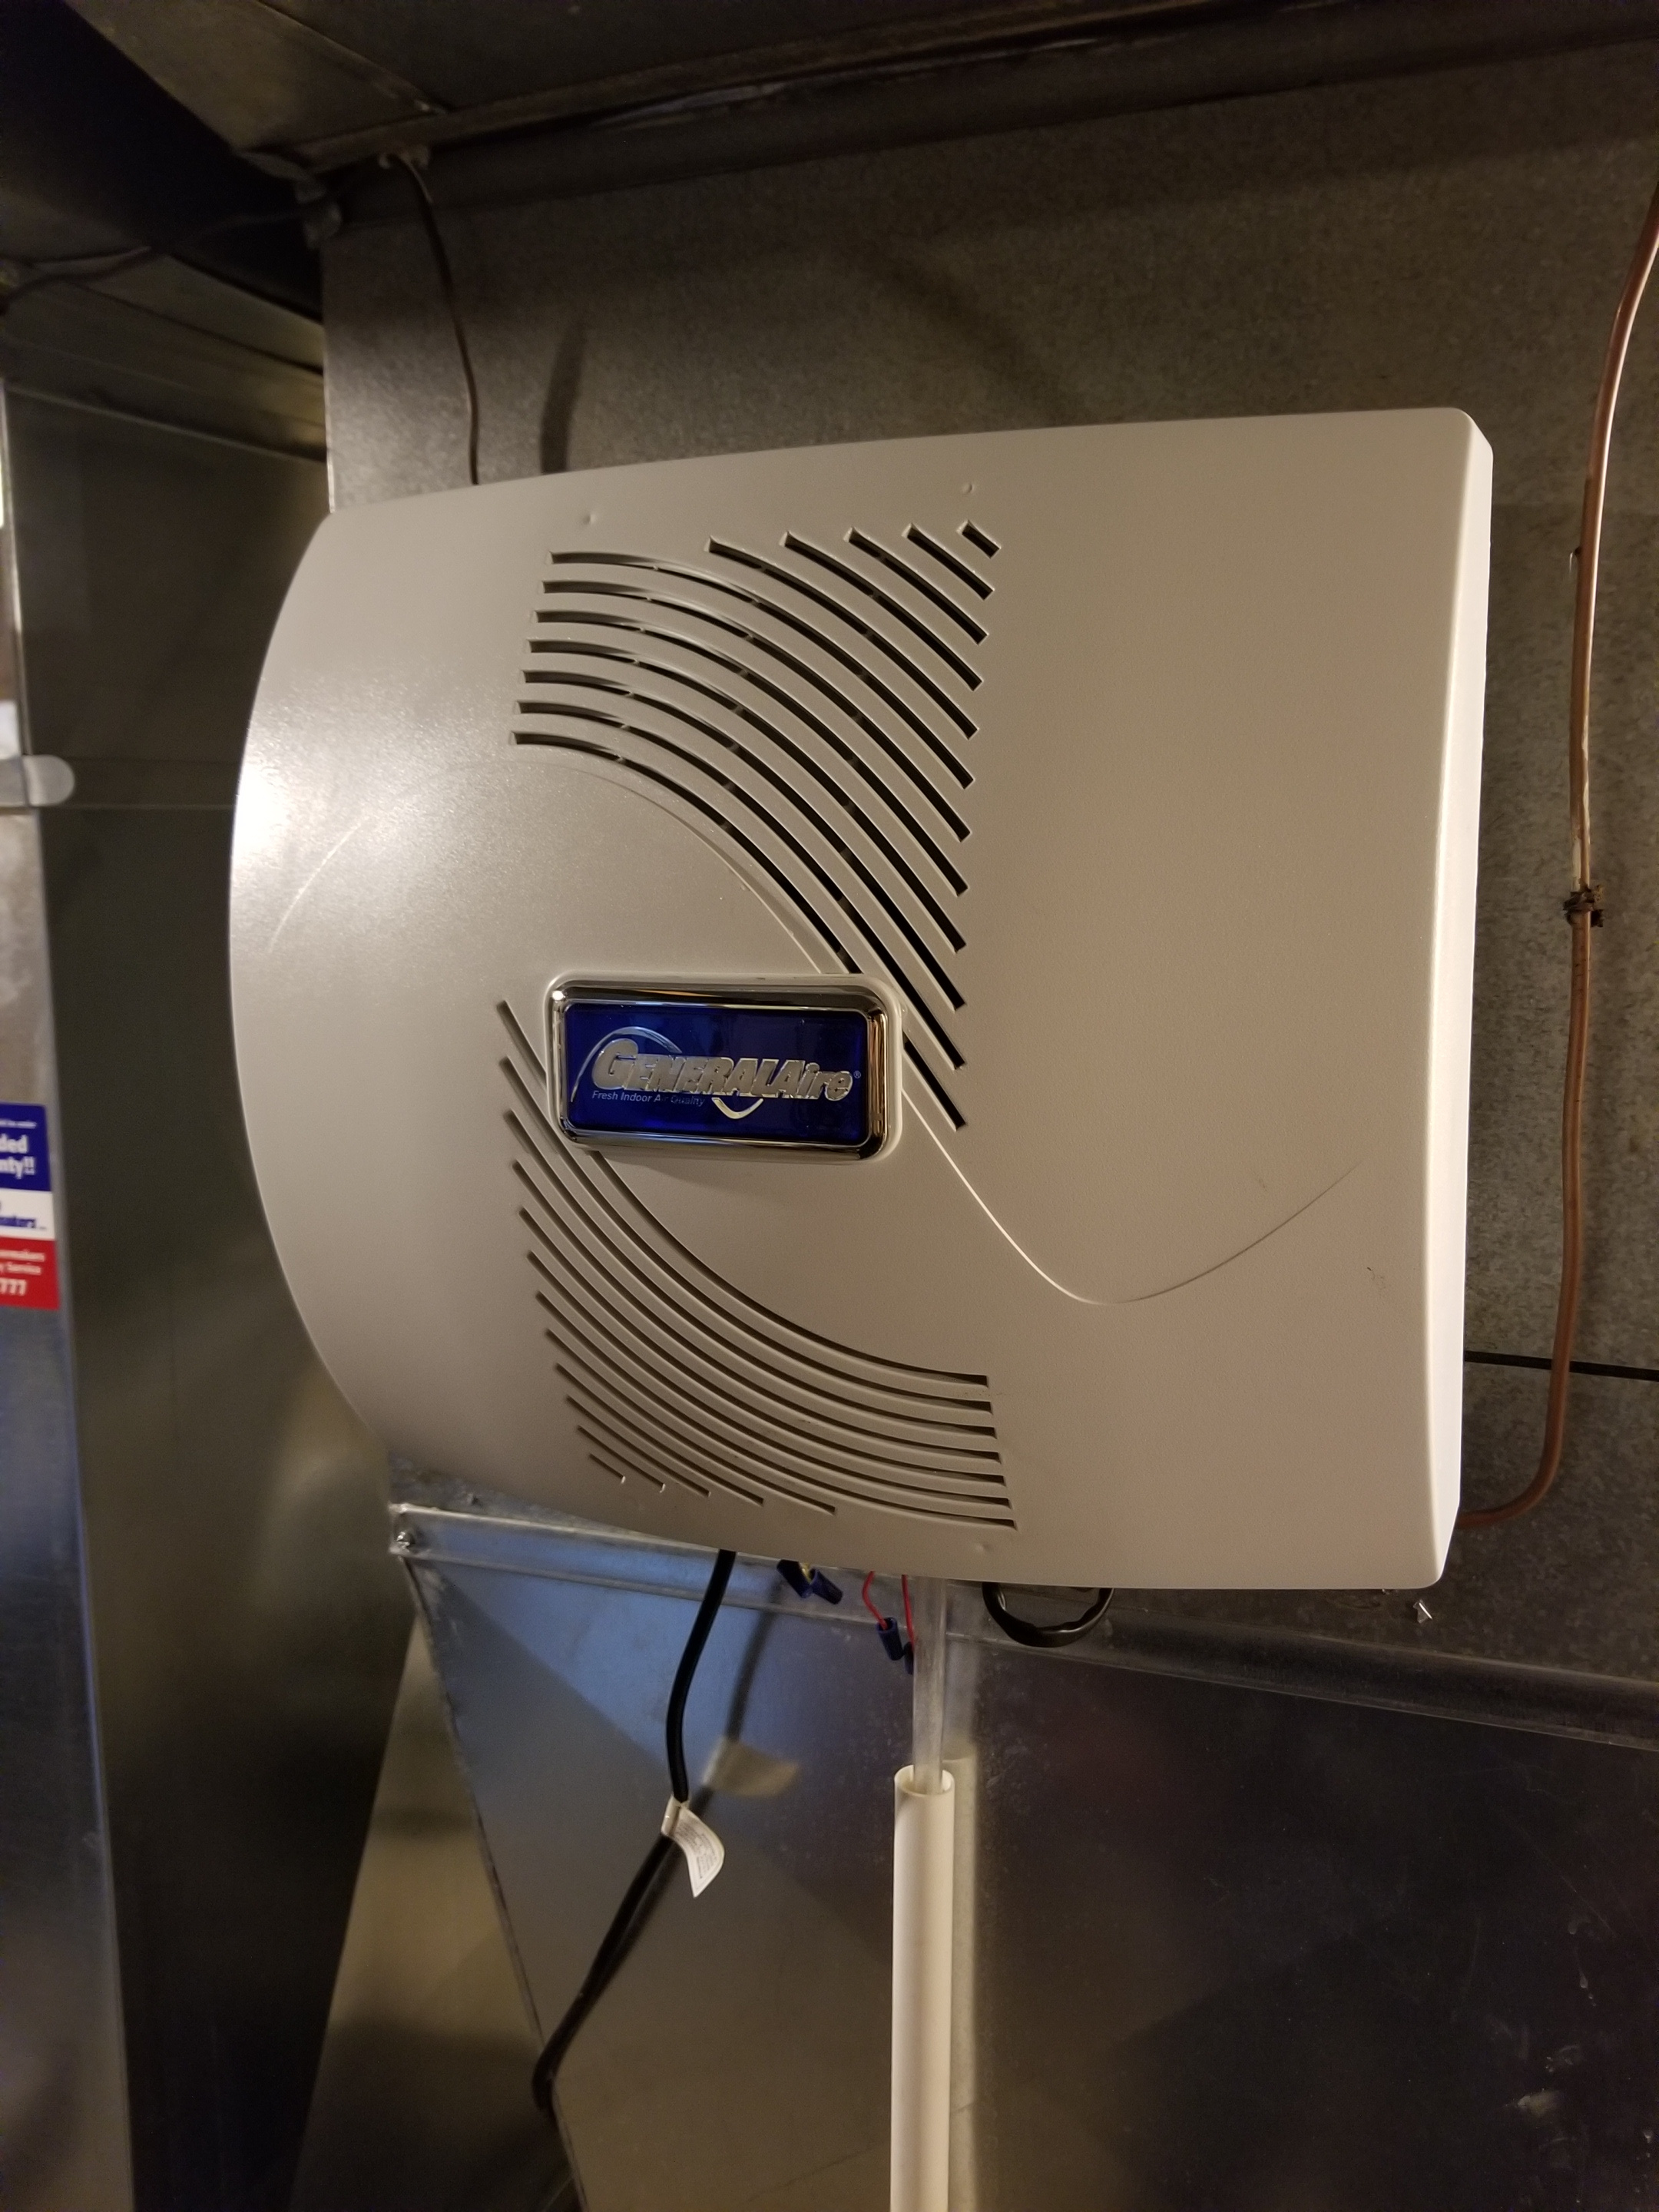 Repaired the GeneralAire humidifier